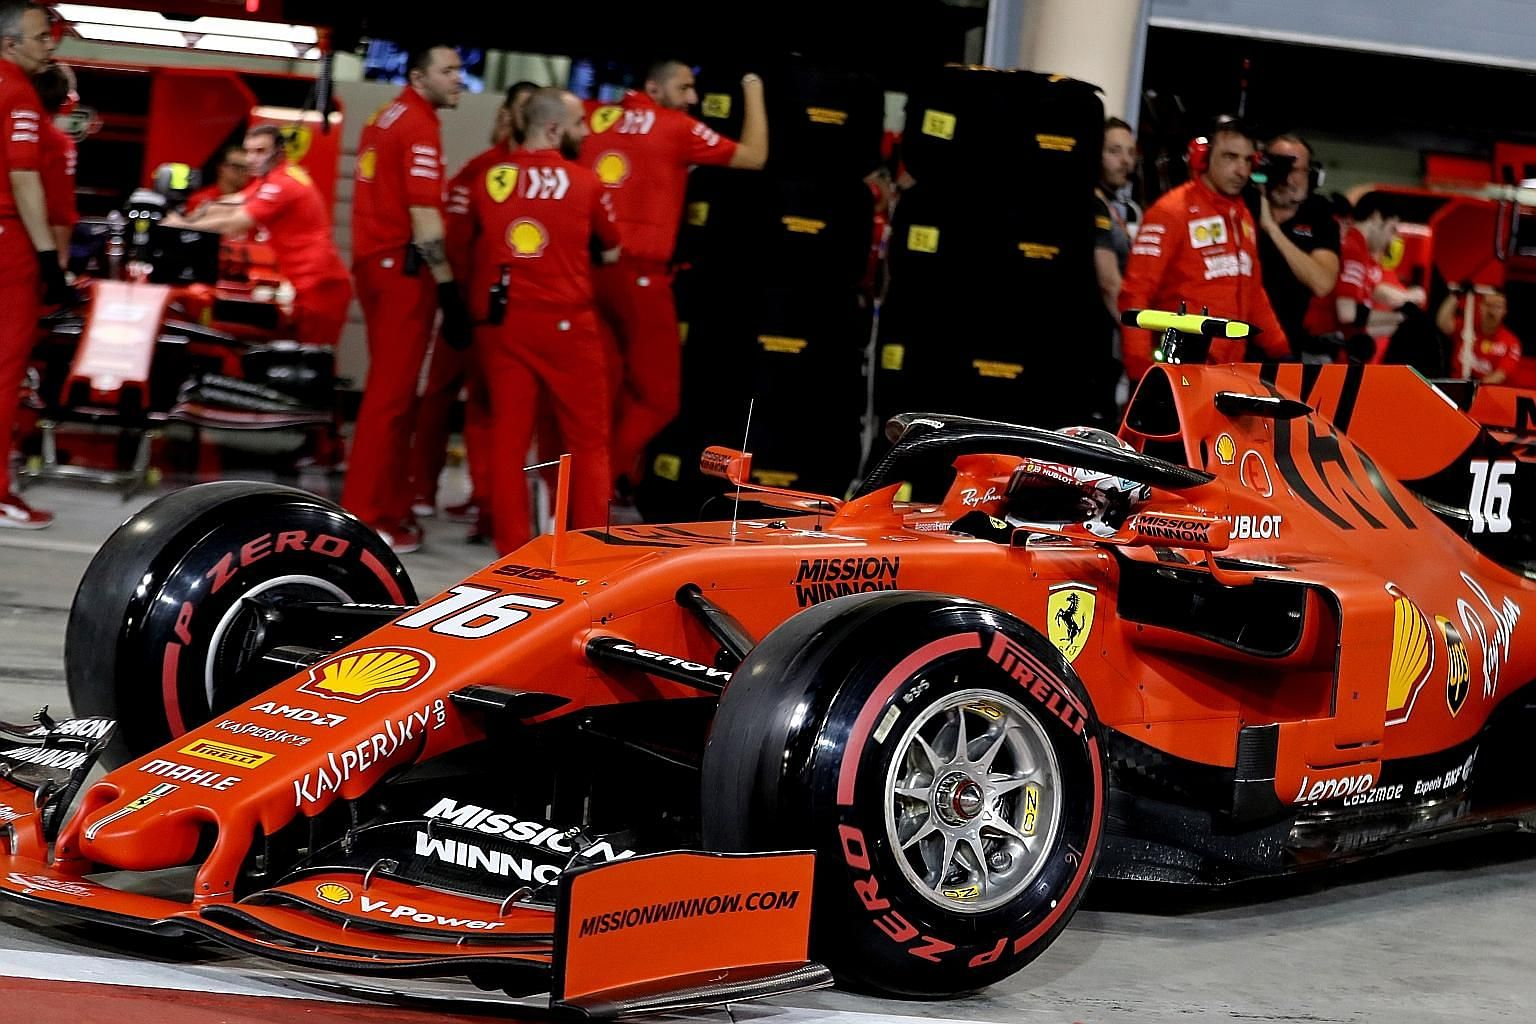 Ferrari driver Charles Leclerc leaving the pit during yesterday's qualifying for the Formula One Bahrain Grand Prix at the Sakhir circuit. He is the second-youngest pole sitter after teammate Sebastian Vettel.